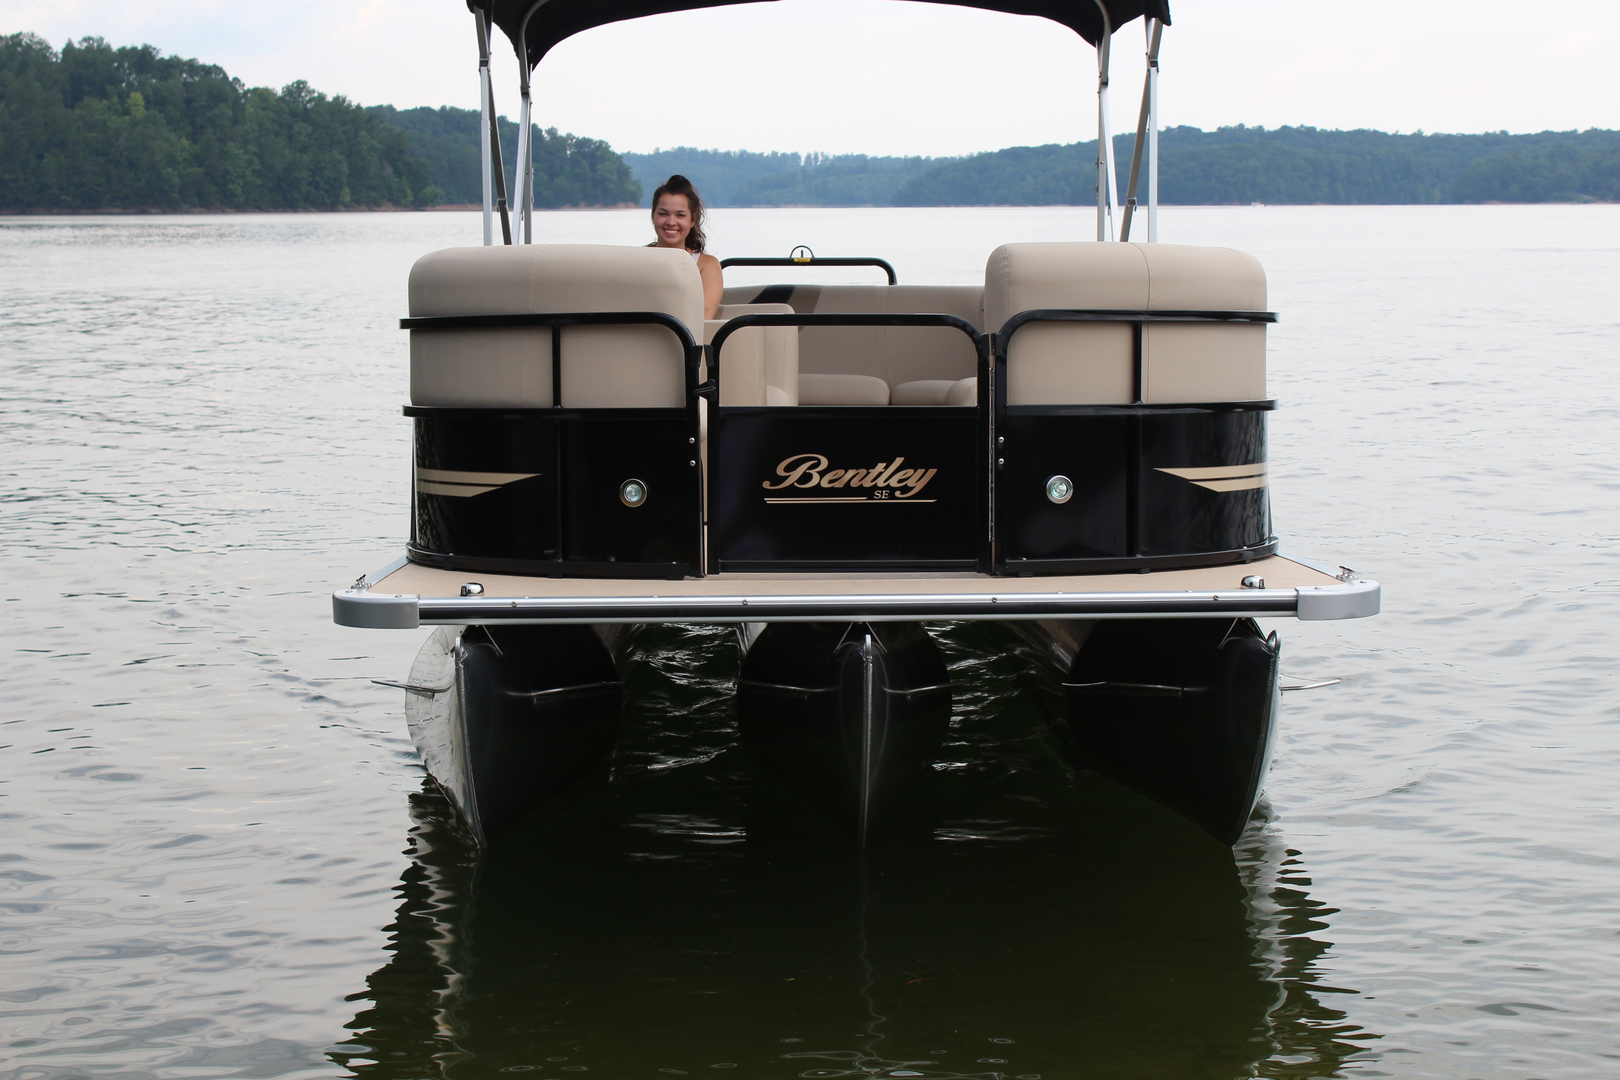 bentley power resize ship shipping boats services boat cost pontoon dealers path to